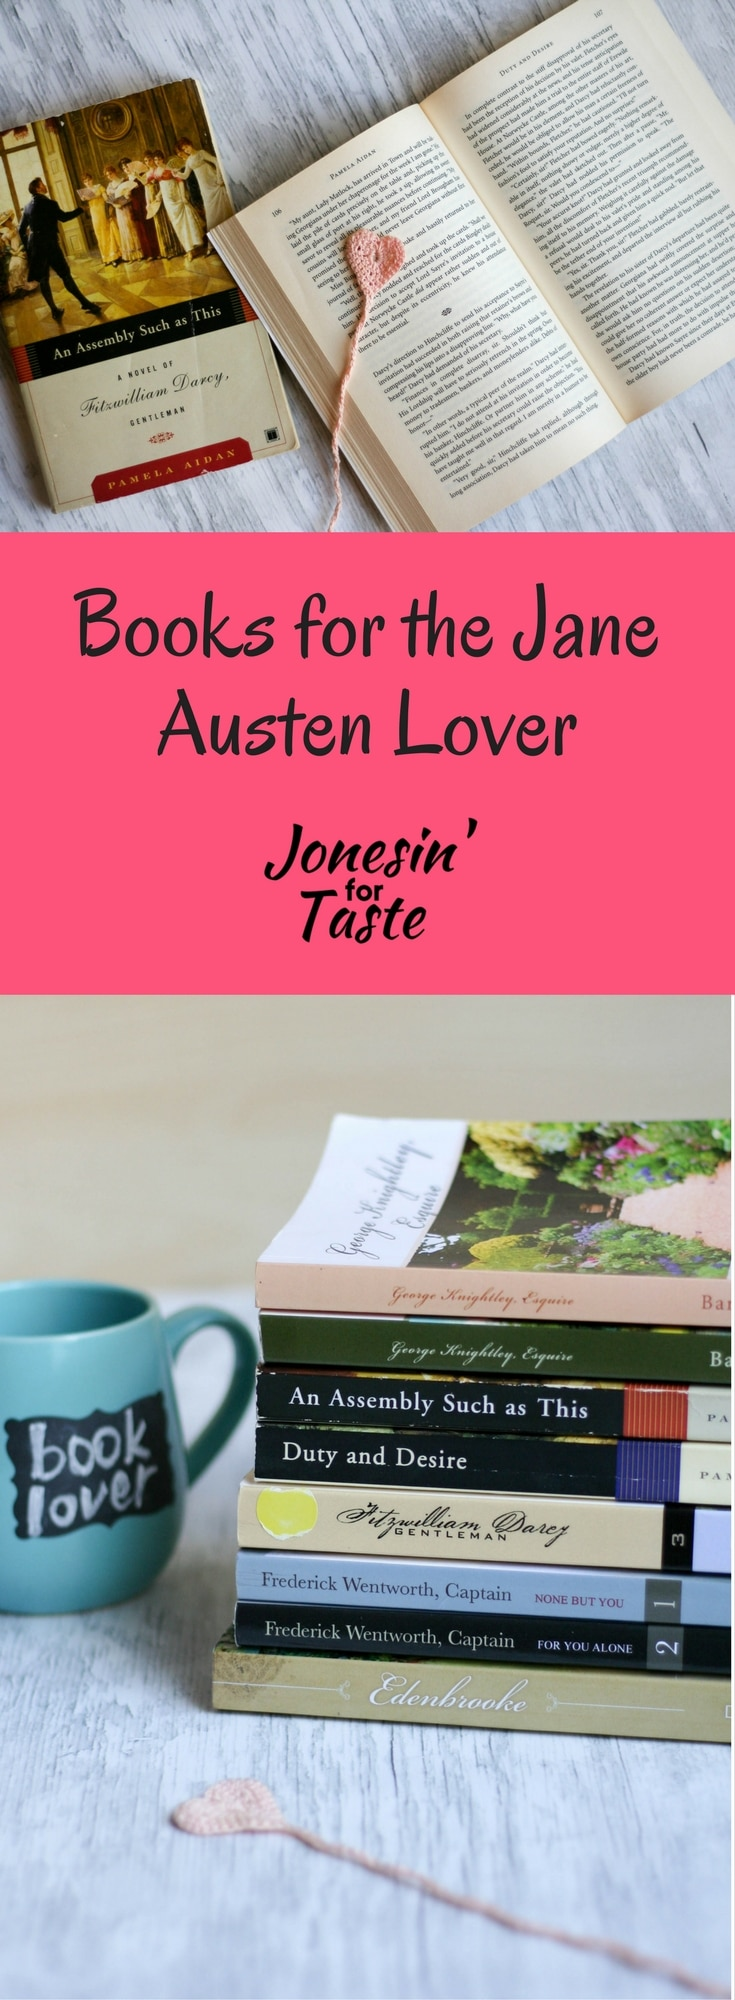 These movies and books for the Jane Austen Lover are sure to please any Jane Austen fan and are perfect for gift giving any time of the year. #giftguides #janeausten